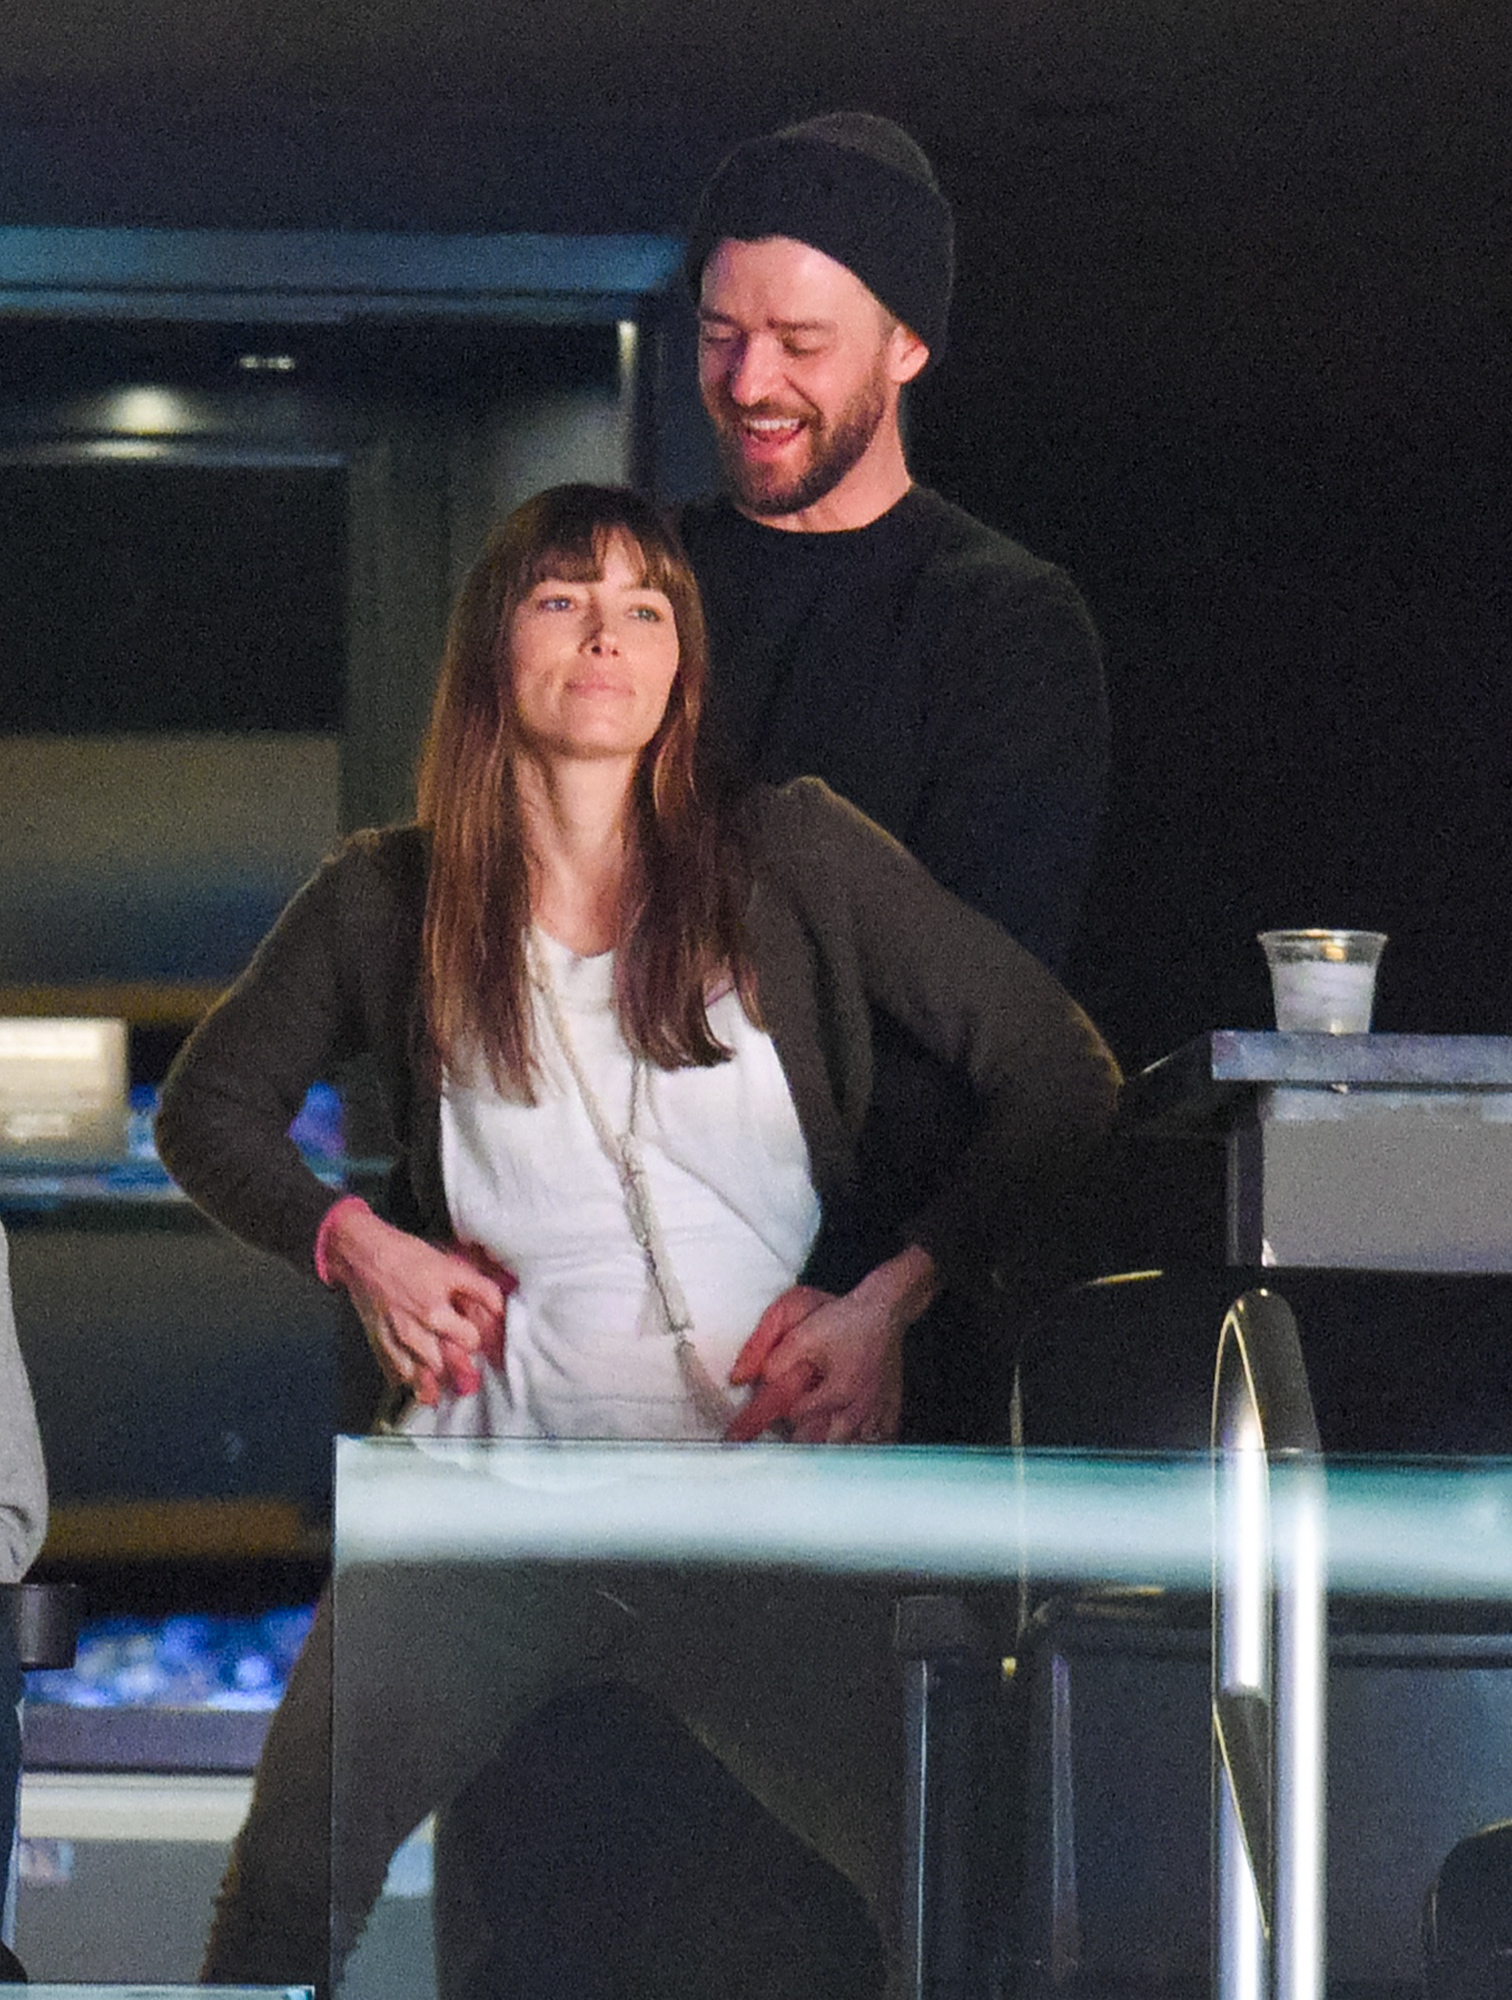 LOS ANGELES, CA - JANUARY 03:  Justin Timberlake and Jessica Biel dance together at a basketball game between the Memphis Grizzlies and the Los Angeles Lakers at Staples Center on January 3, 2017 in Los Angeles, California.  (Photo by Noel Vasquez/Getty Images)